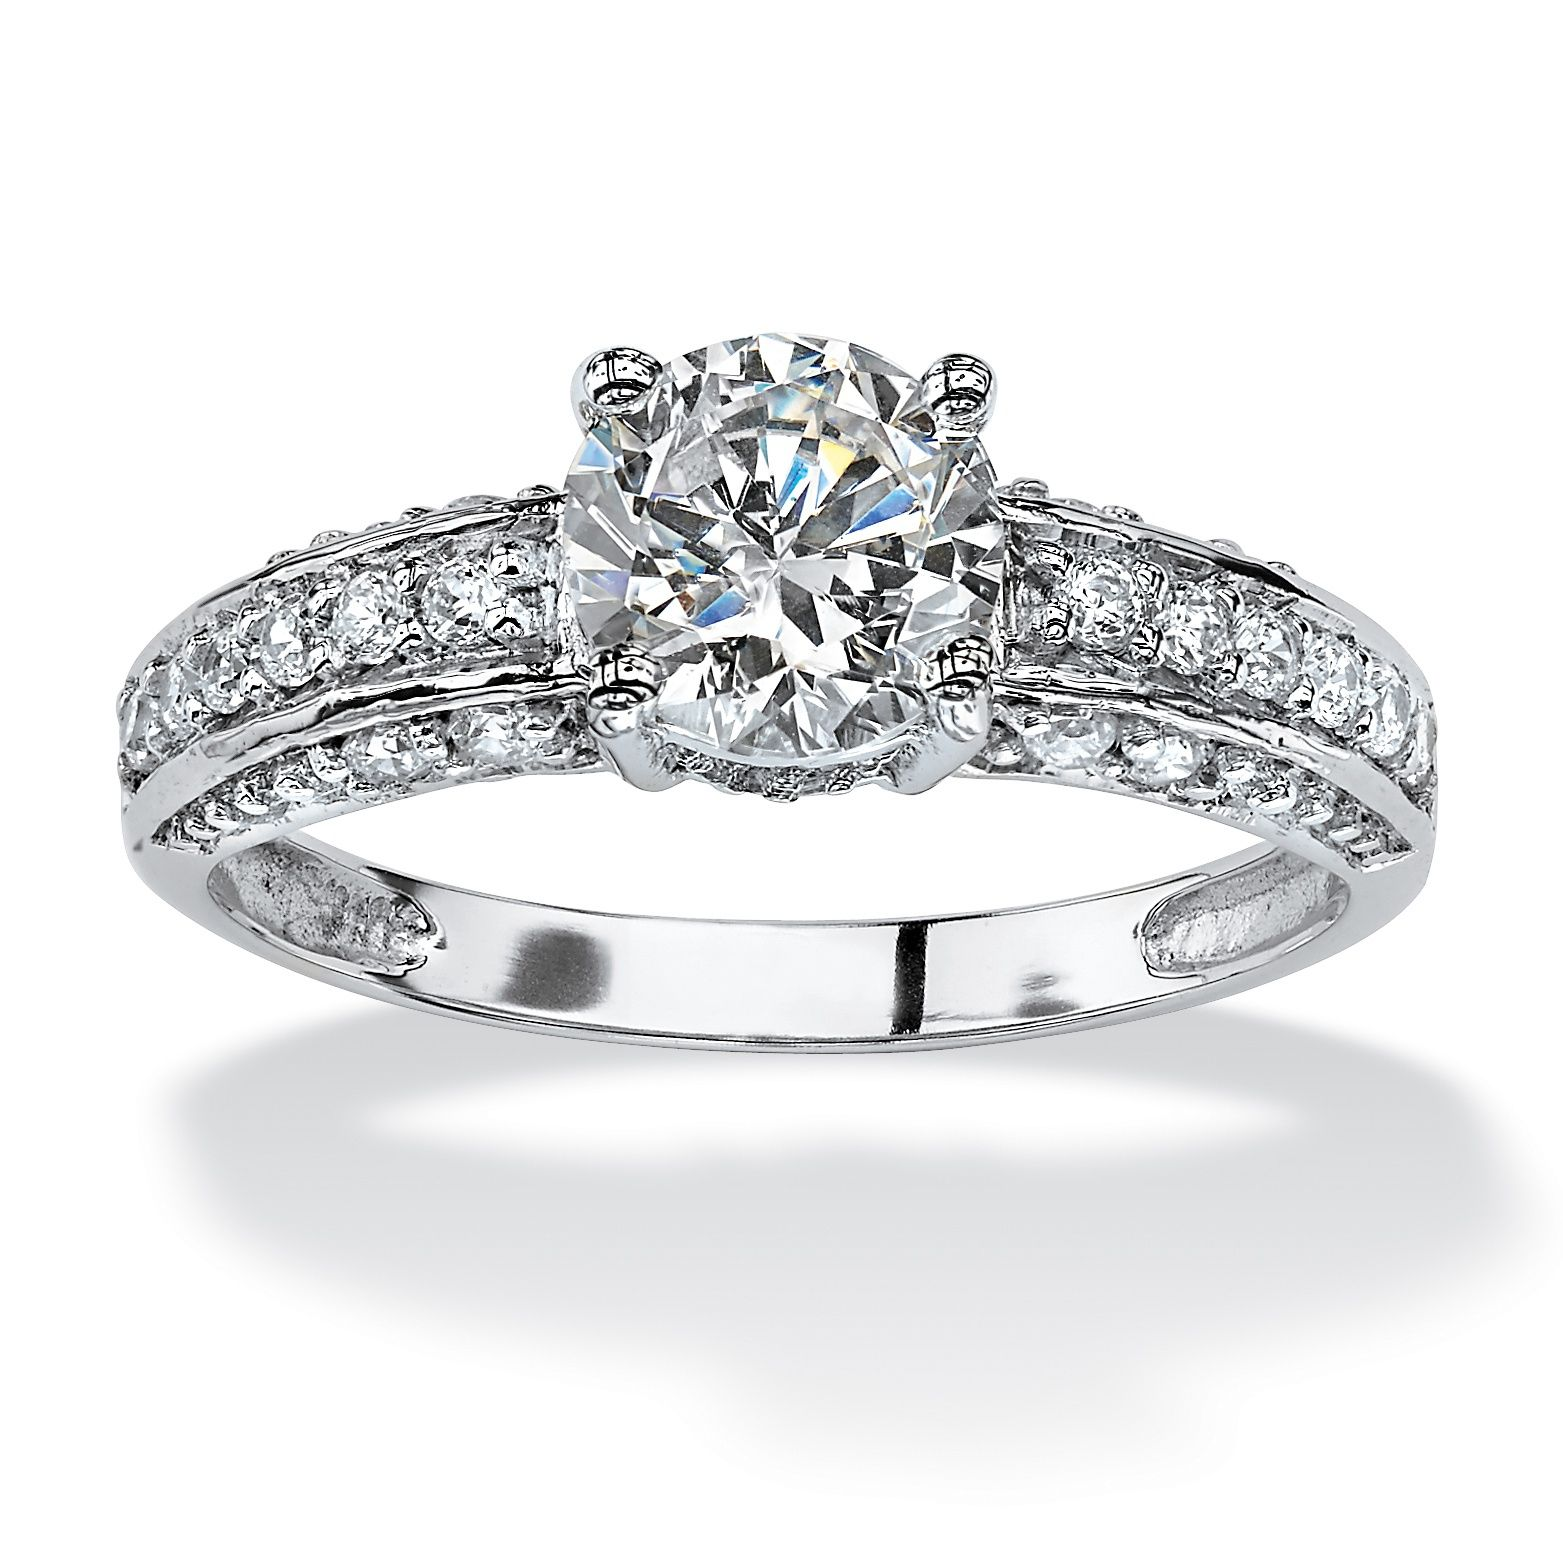 1.80 TCW Round Cubic Zirconia Ring in 10k White Gold on